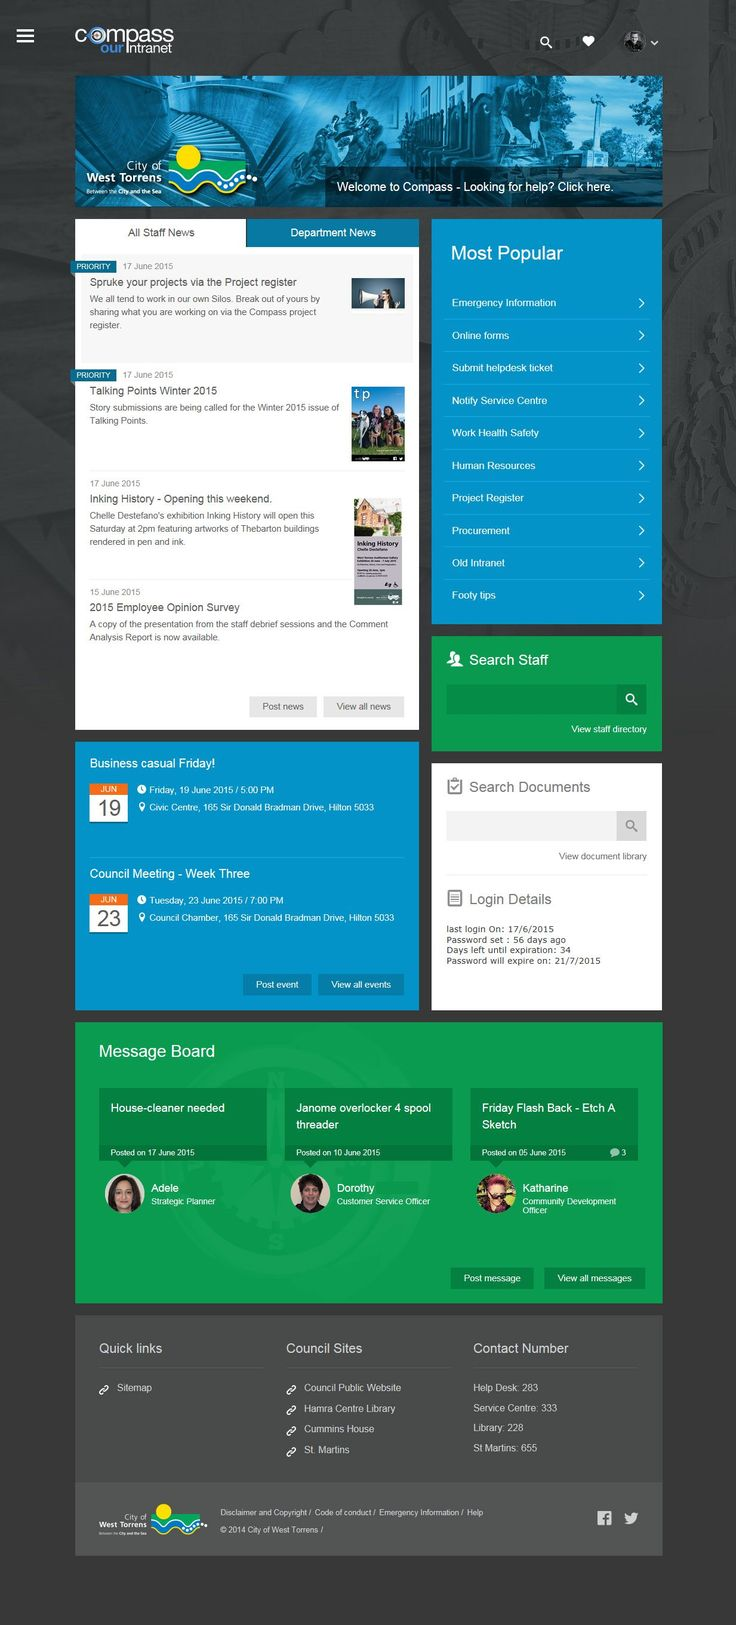 Sharepoint site design ideas -  Has Introduced A New Intranet For Its 300 Staff To Replace An Old Underperforming One The Intranet Includes A Simple Attractive And Modern Design